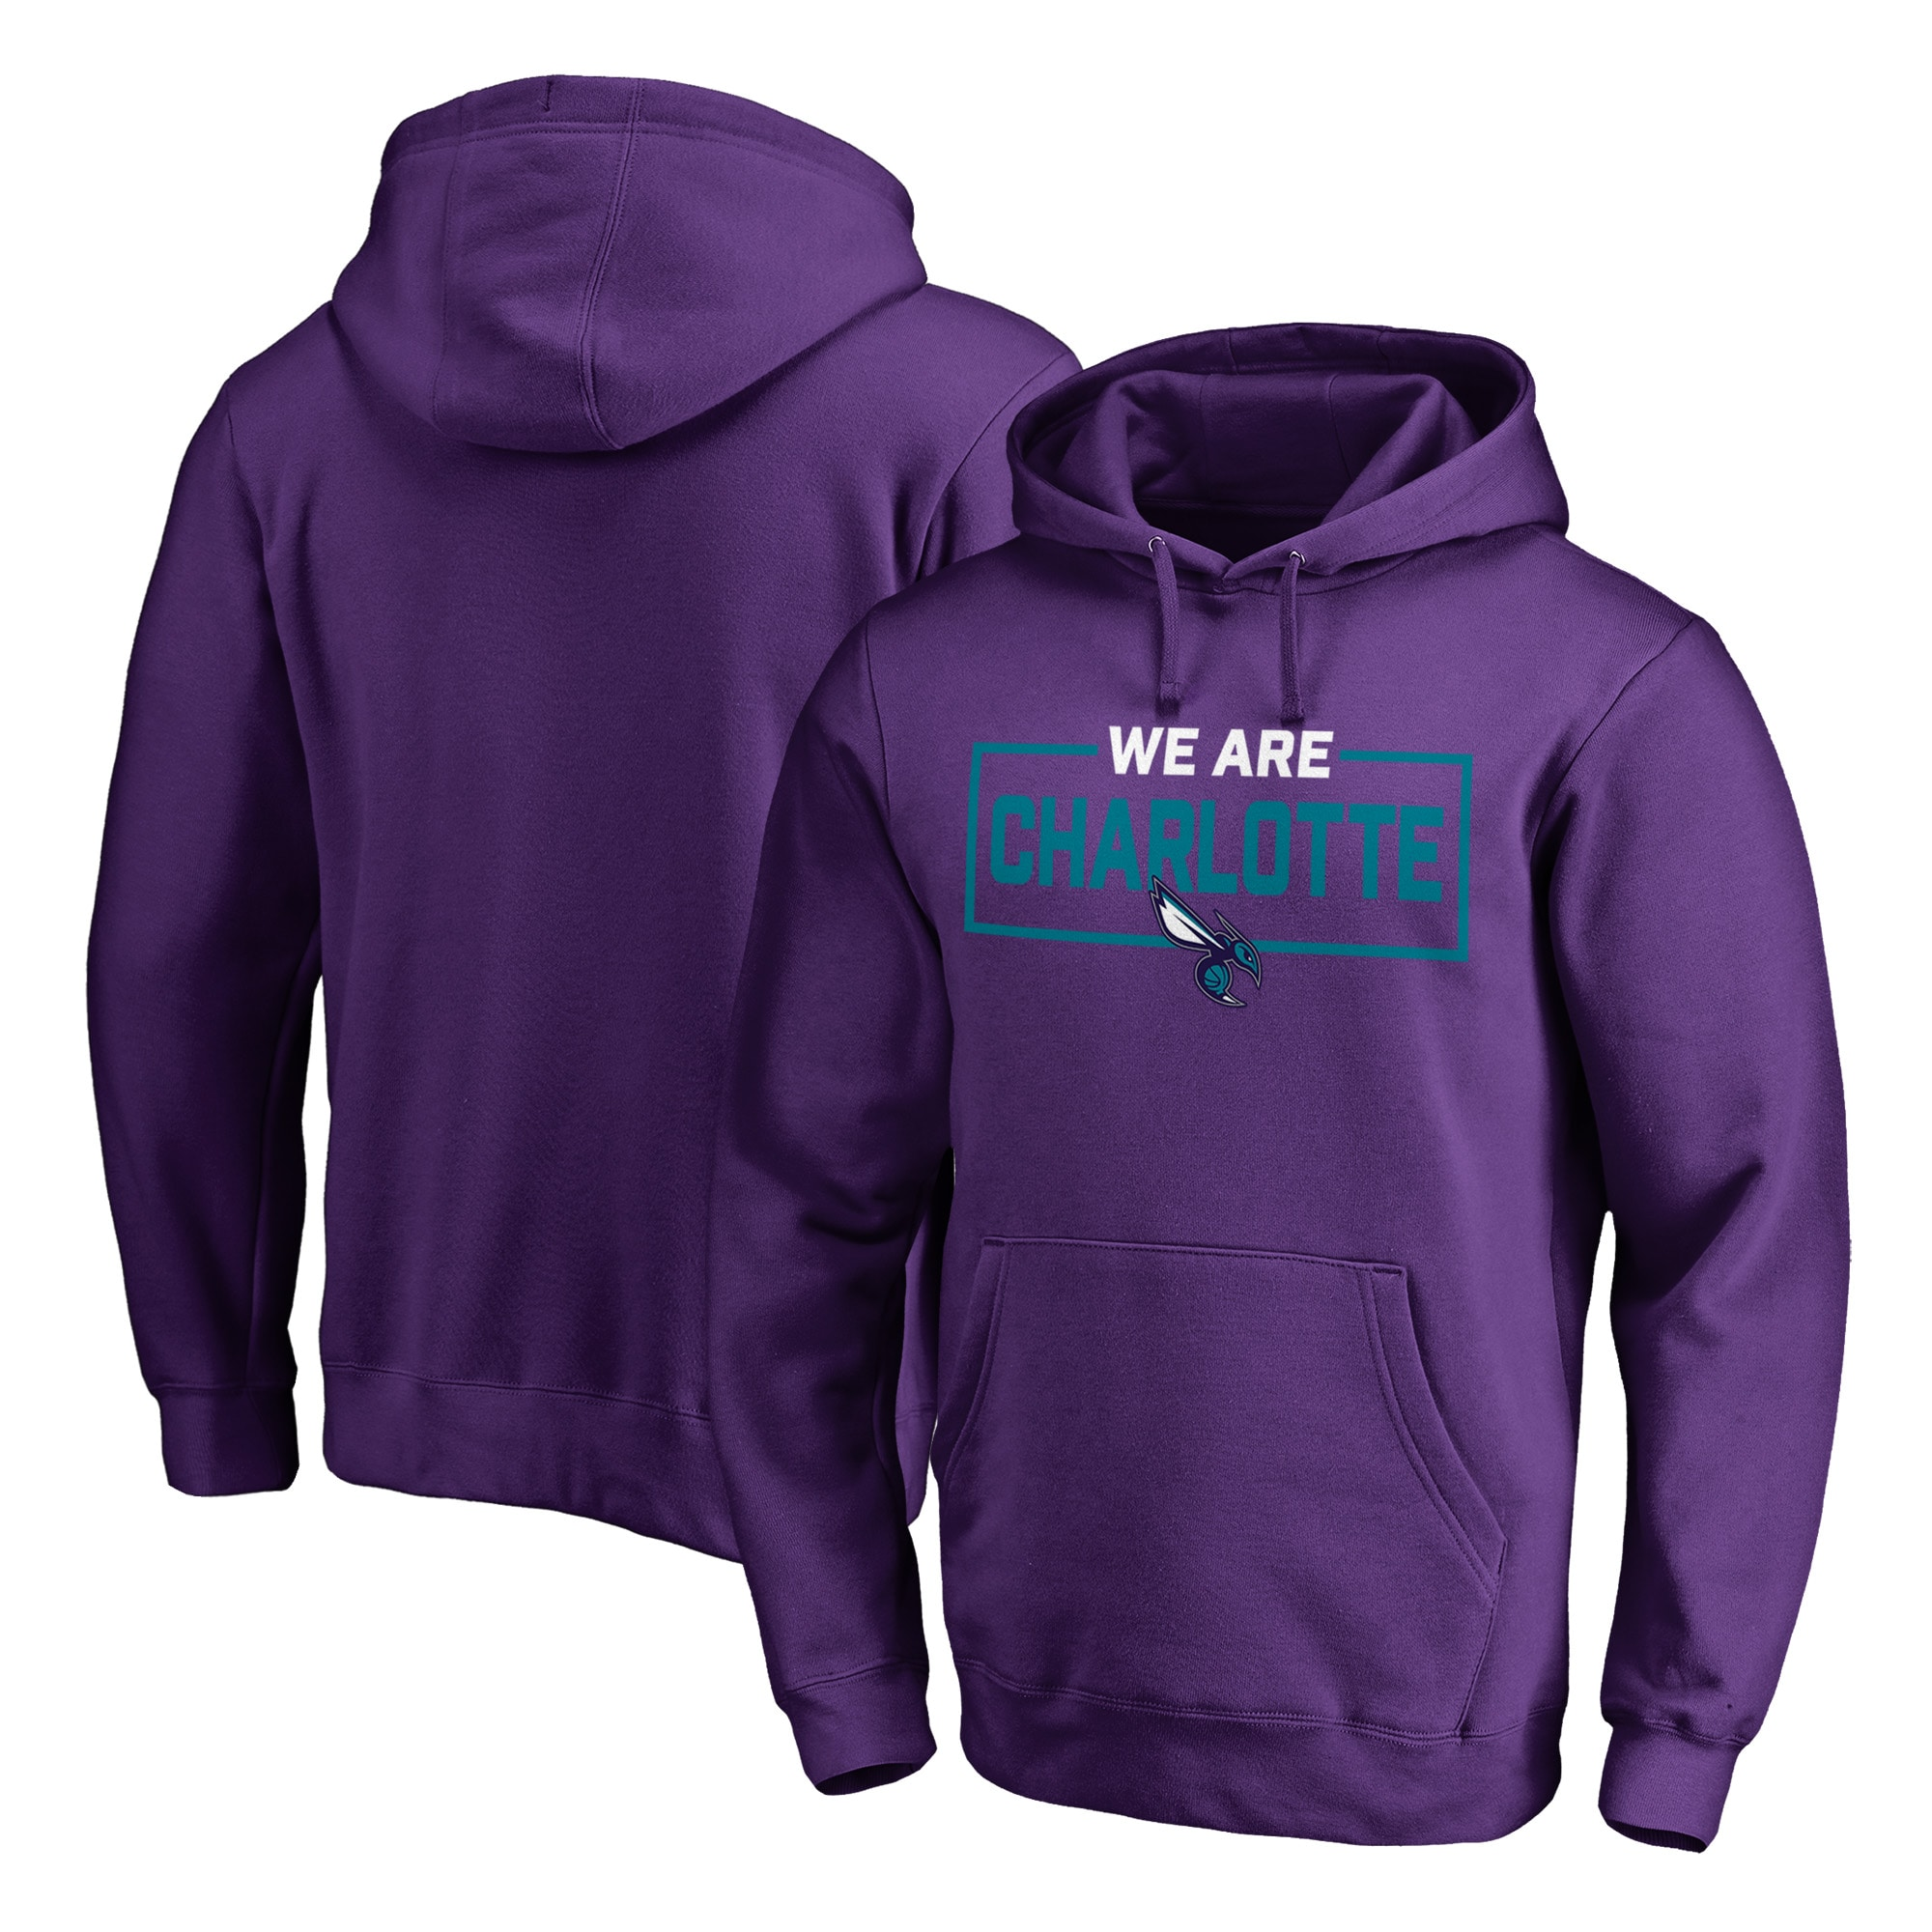 Charlotte Hornets Fanatics Branded We Are Iconic Collection Pullover Hoodie - Purple